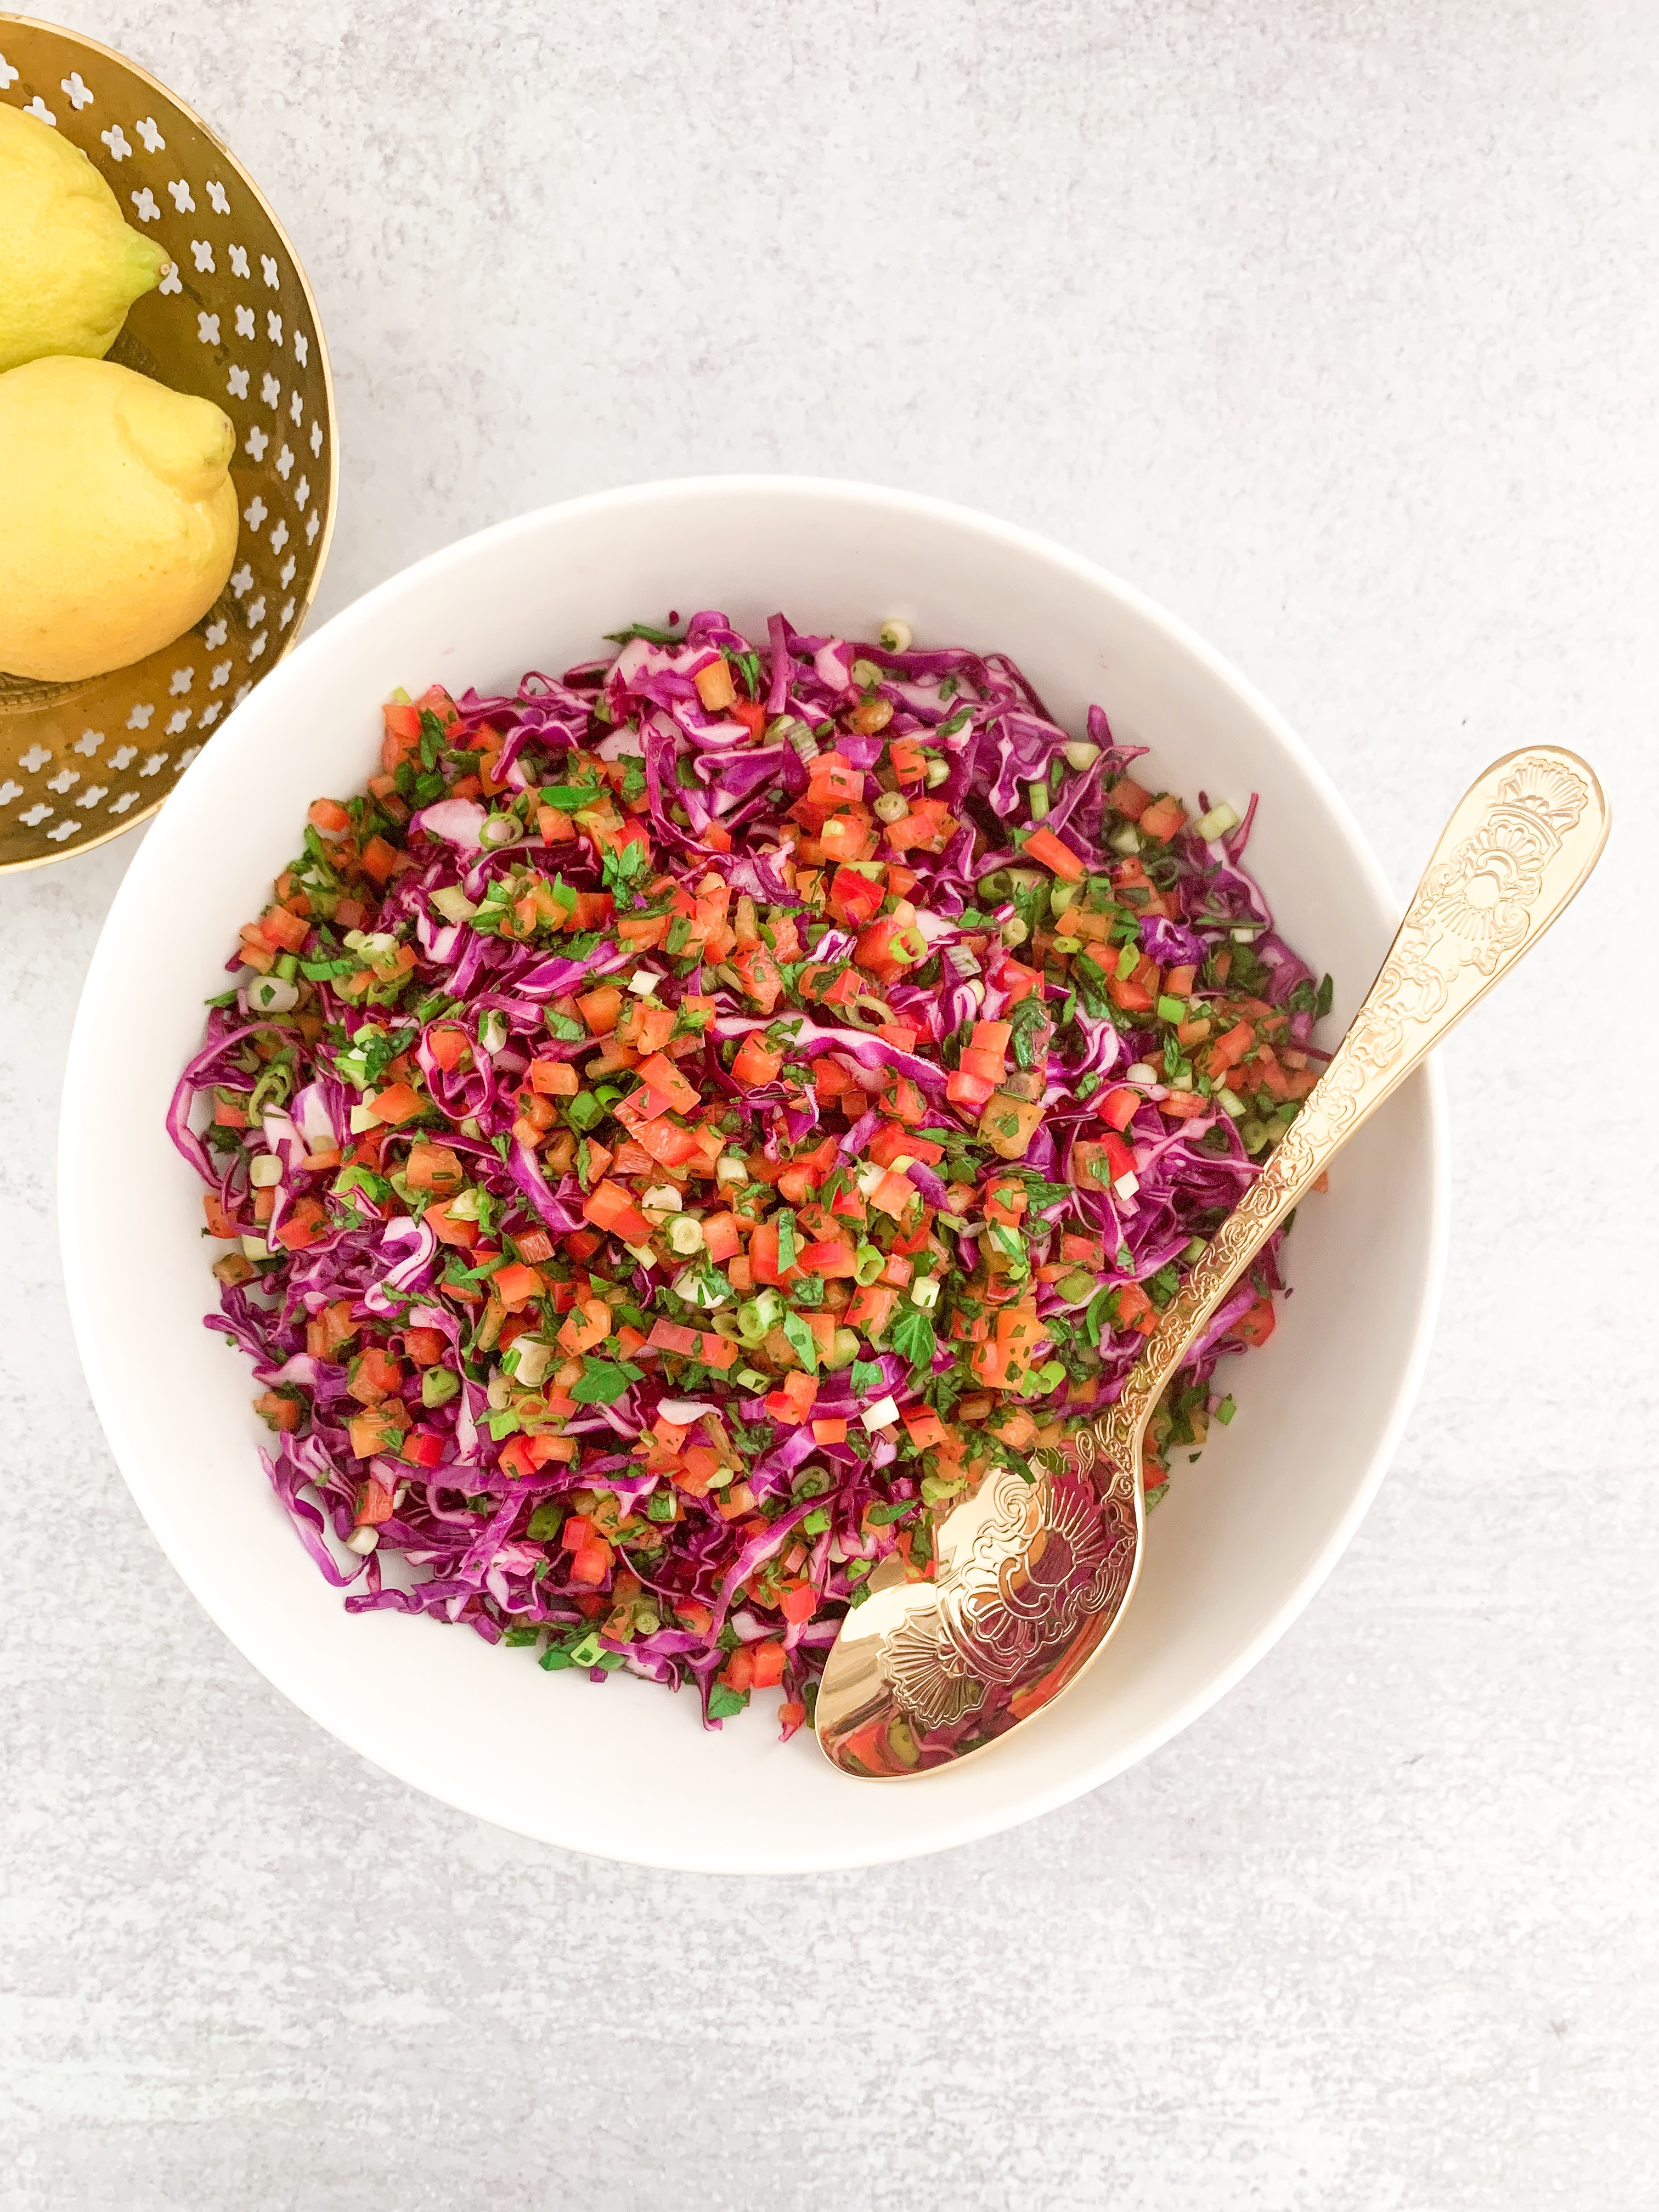 Malfouf Salad - Lebanese Red Cabbage Salad